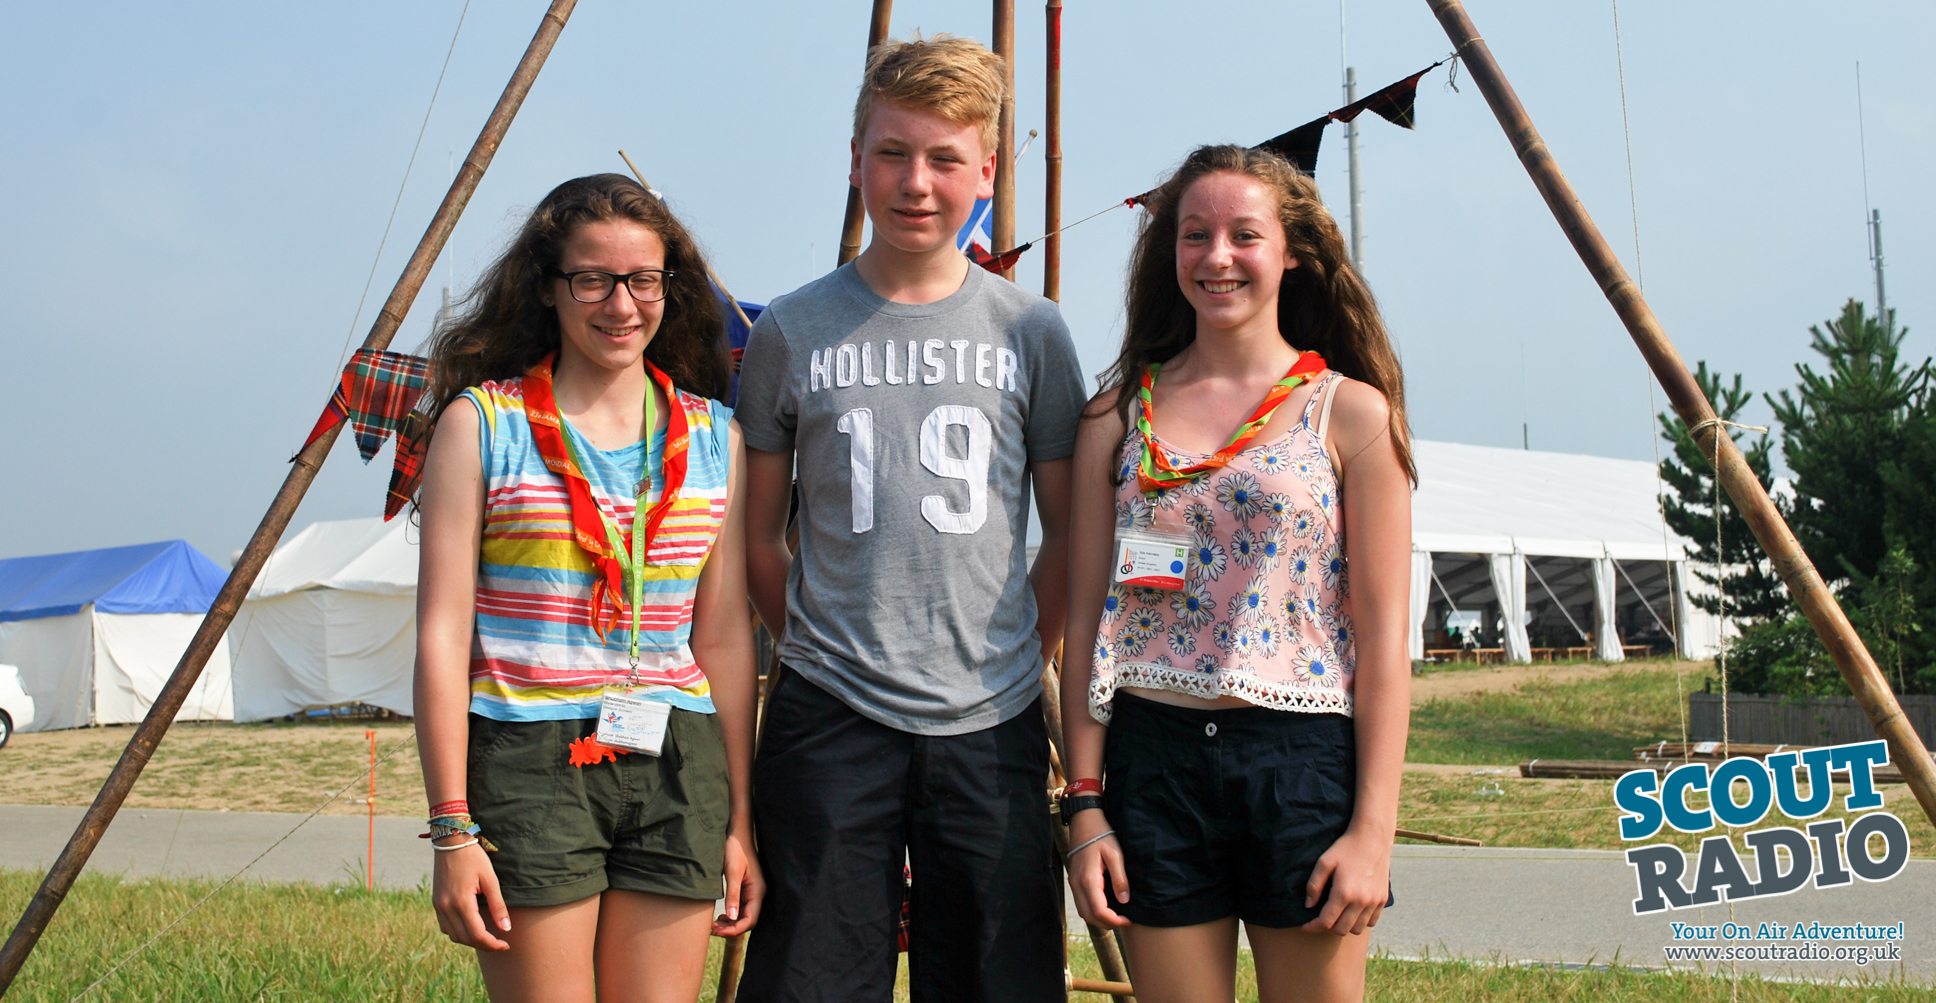 WSJ2015: Unit Clyde Region